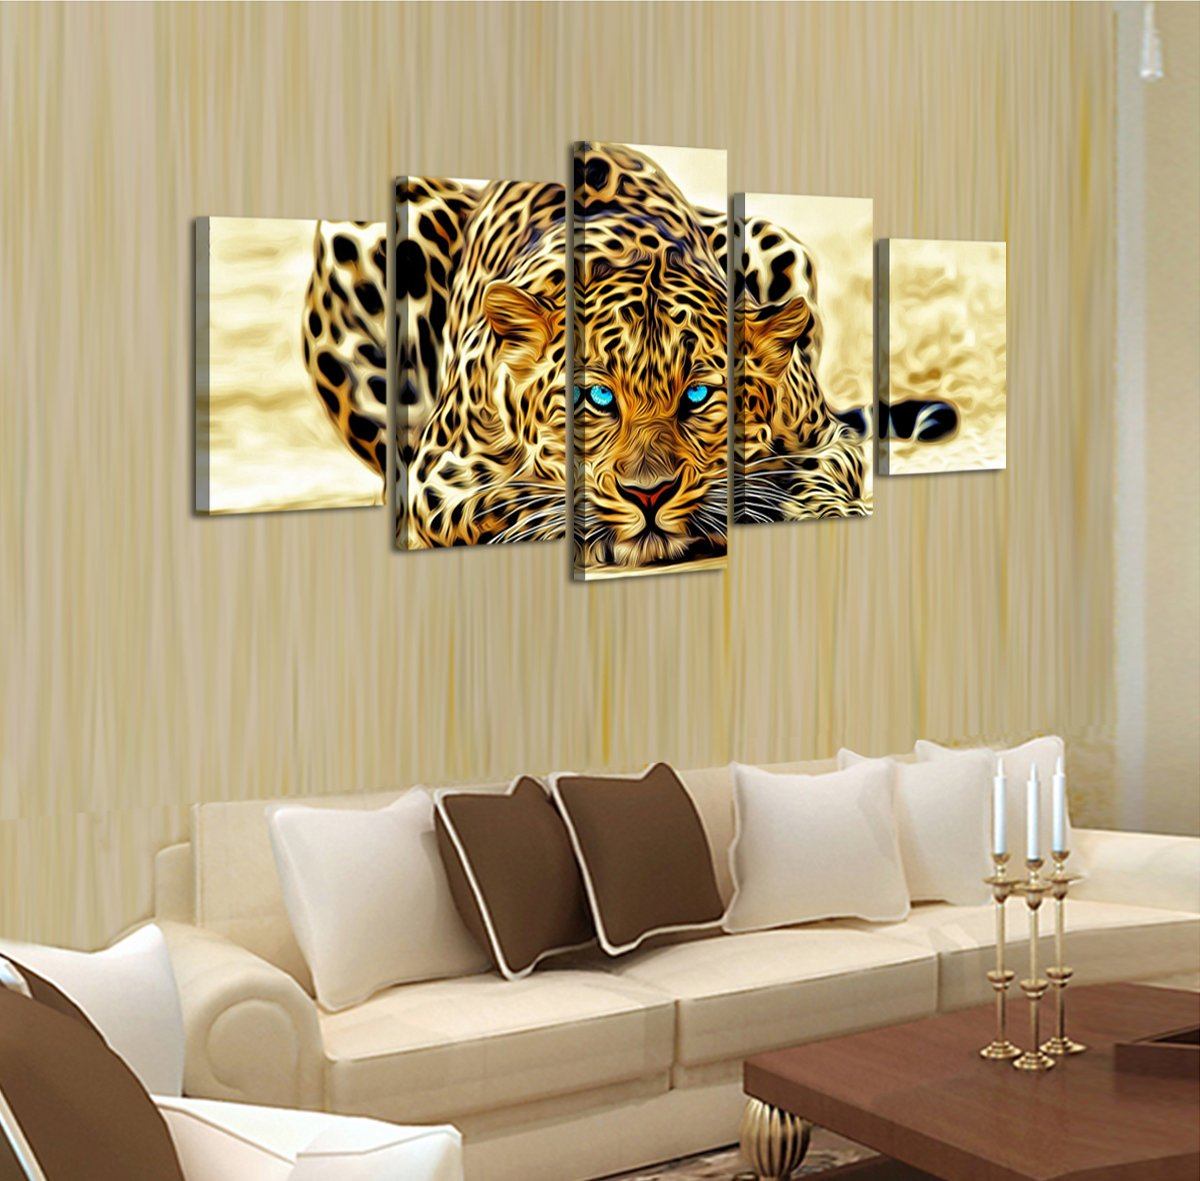 Amazon.com: DZL Art D40339B Home Decoration, Framed, Stretched and ...